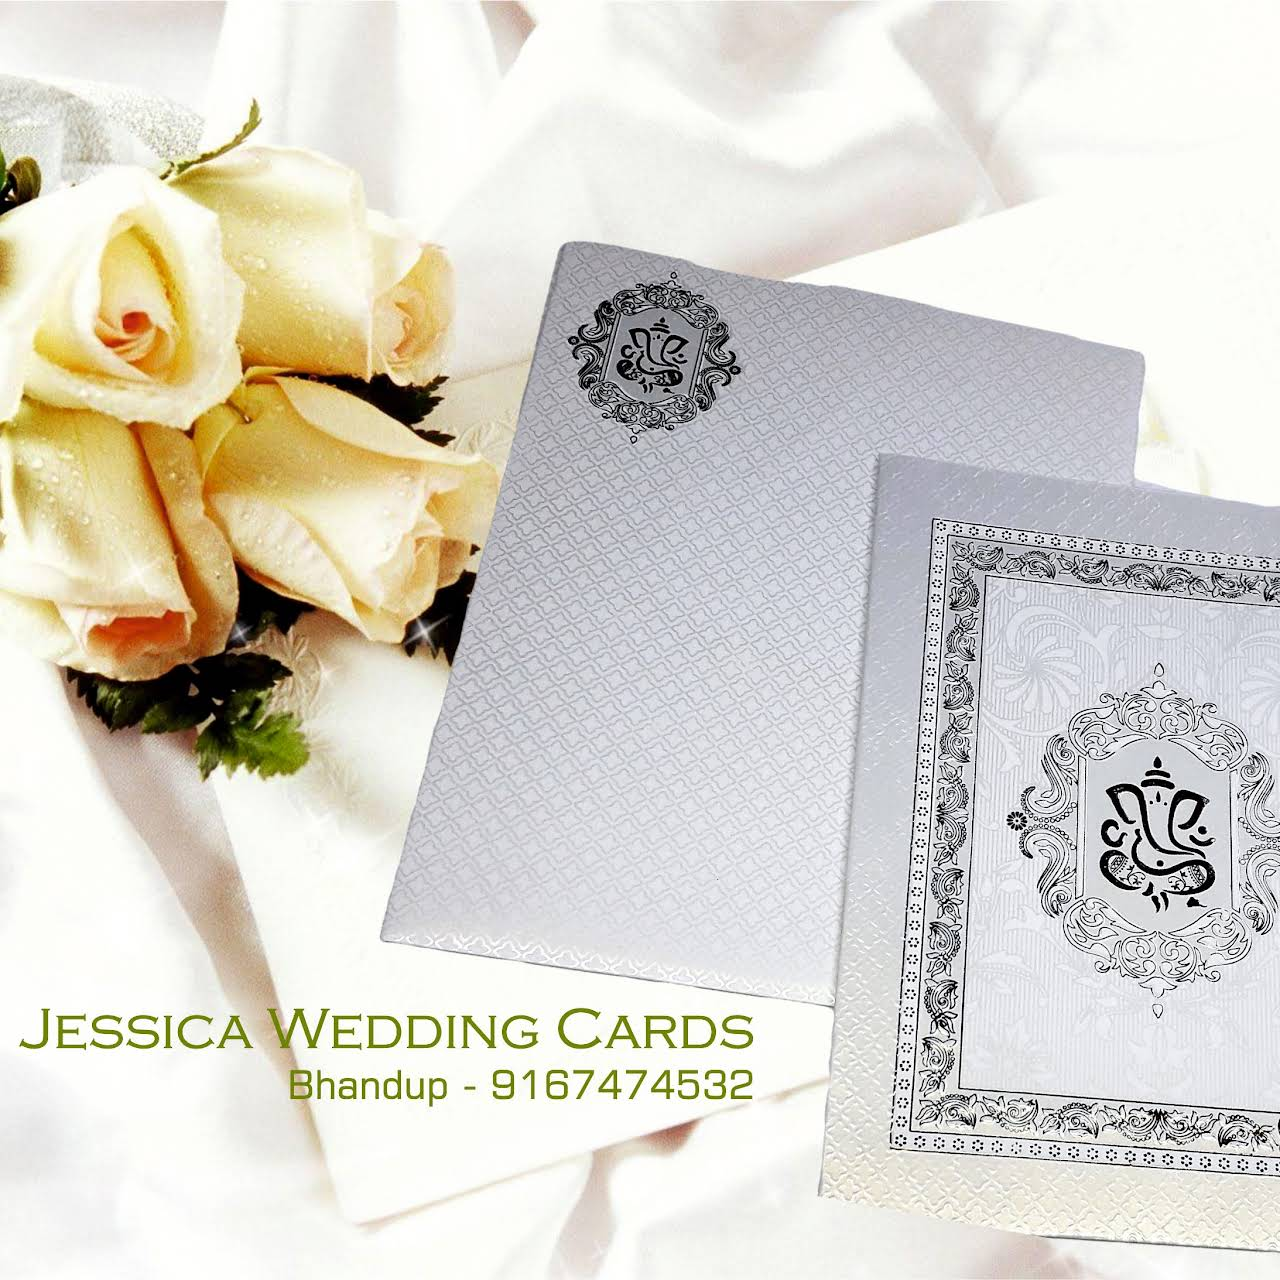 Jessica wedding cards - All Types of Invitation Cards at Wholesale